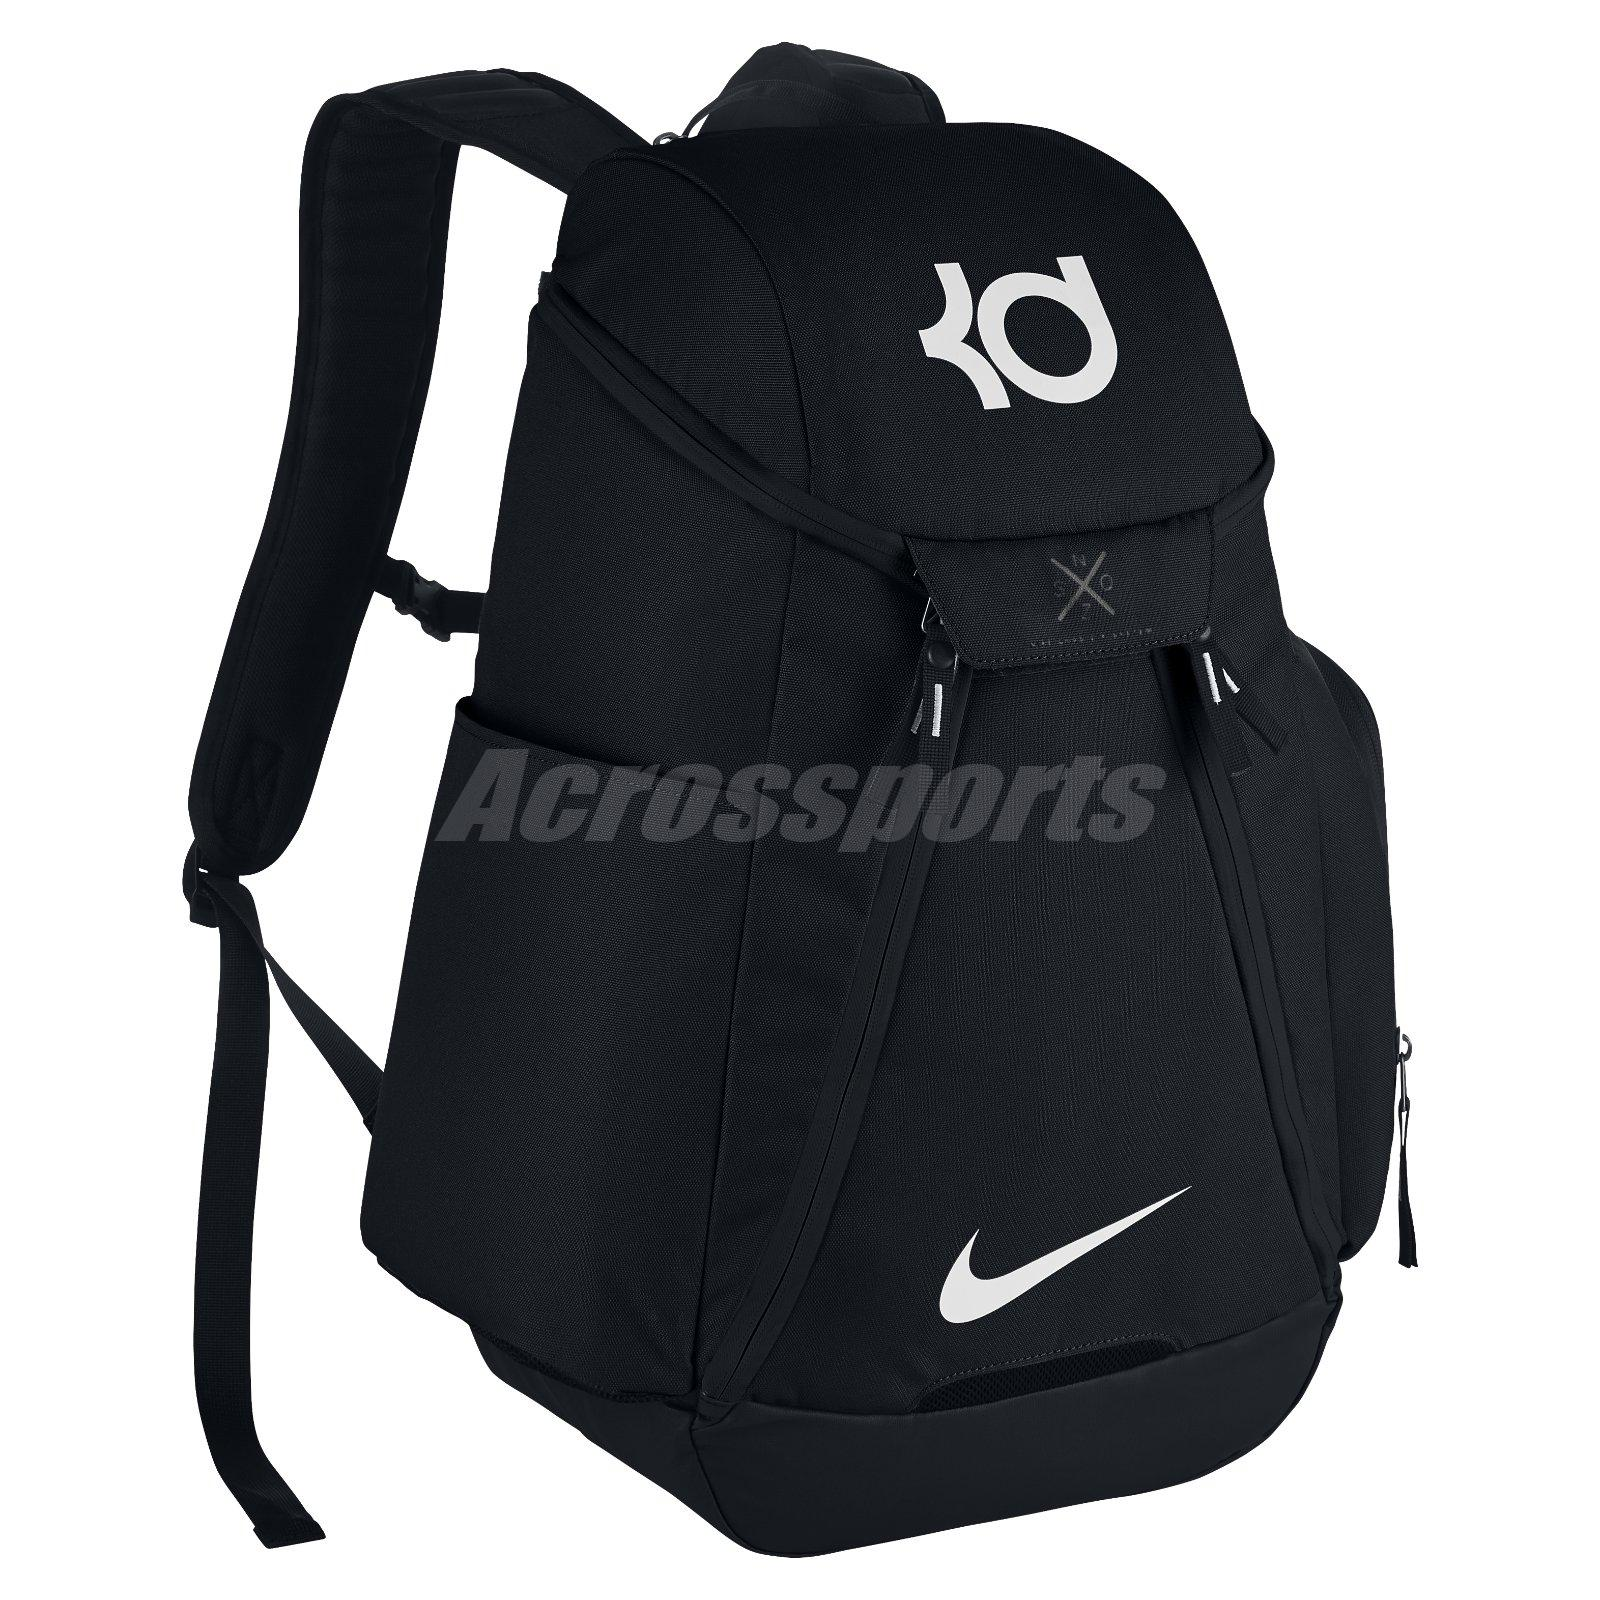 huge discount 97daa 645b3 ... Nike KD Max Air Elite Kevin Durant Black White Basketball Backpack  BA5394-010 ...